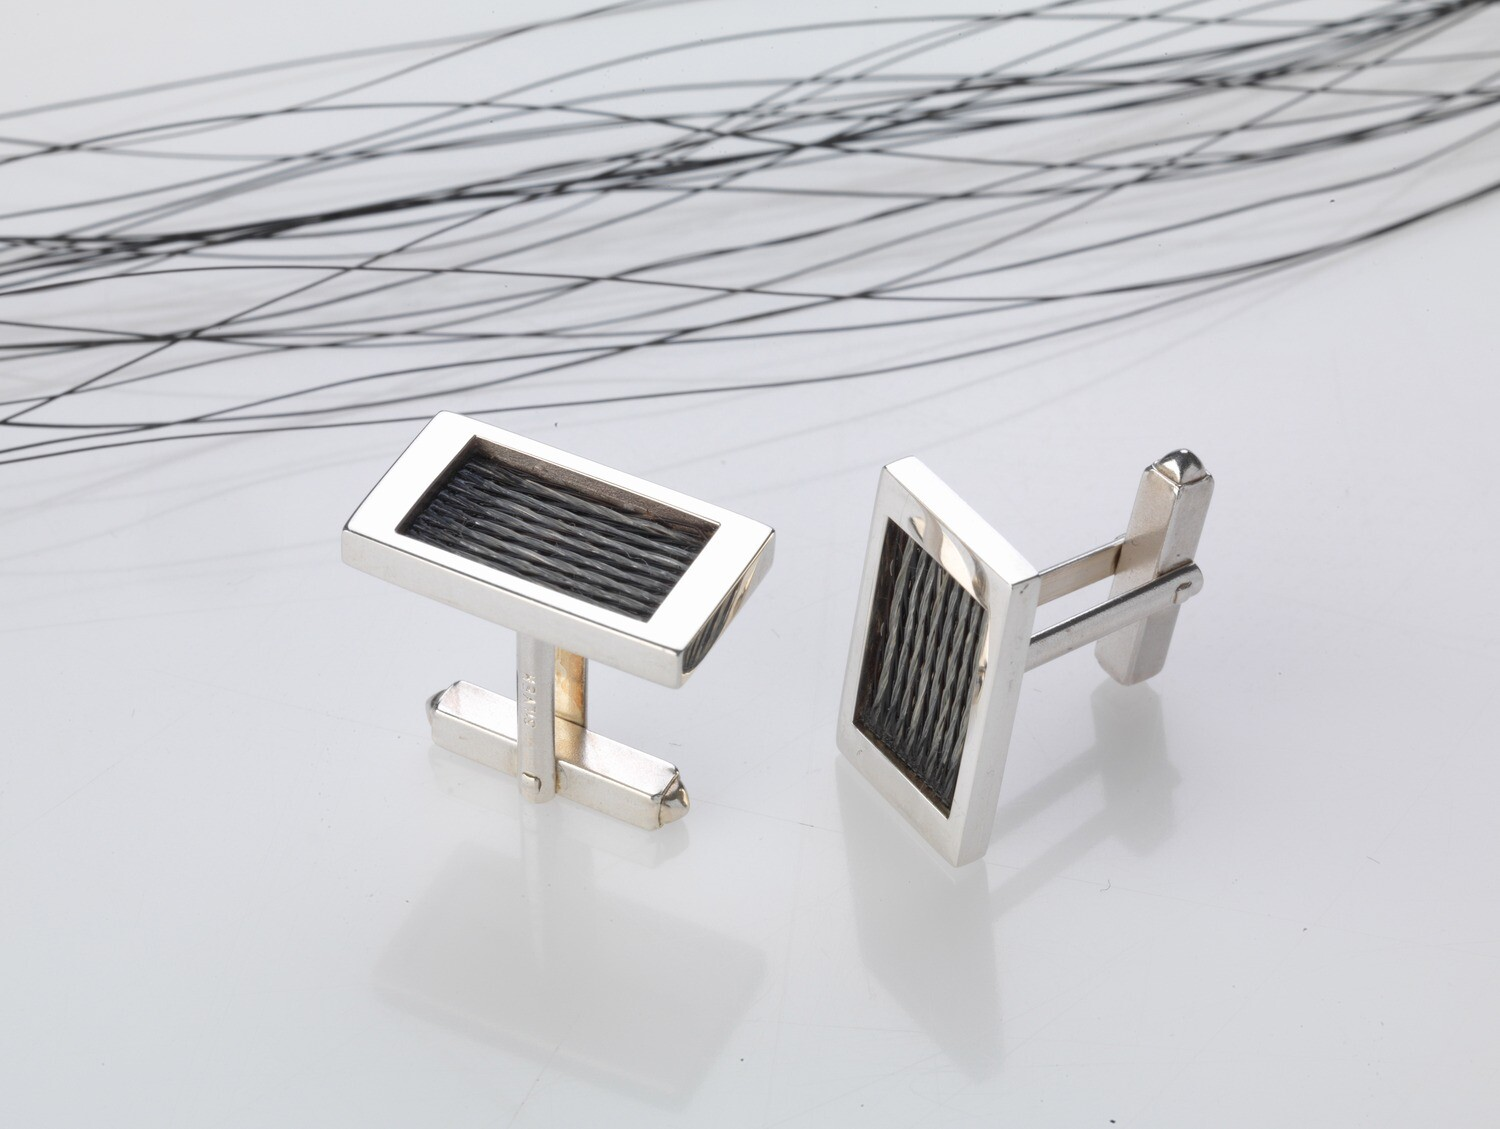 Woven inlaid horse hair cufflinks - Patterned